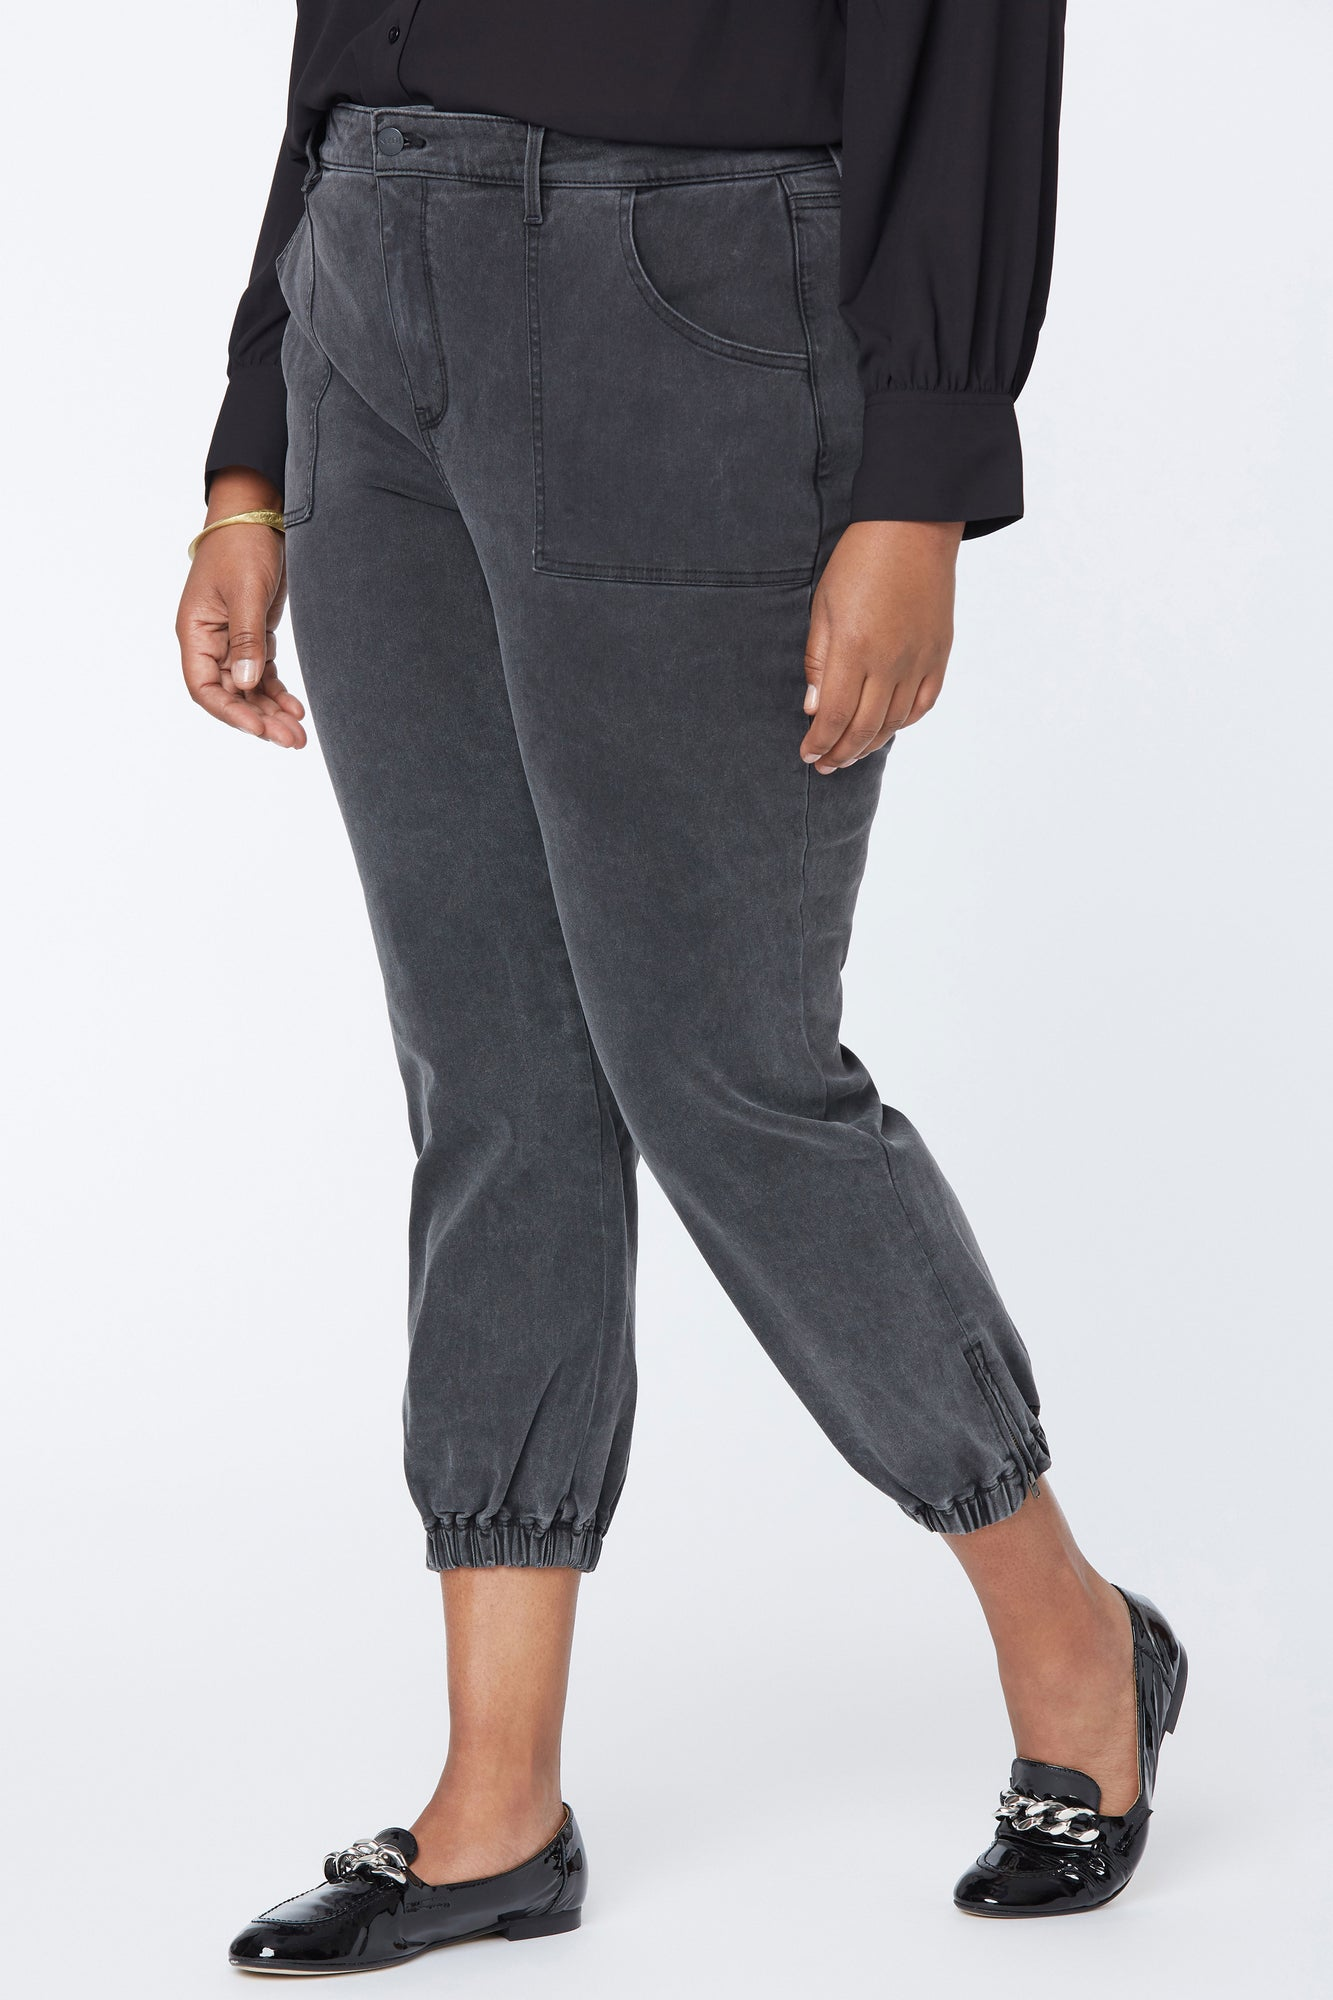 Jogger Jeans In Plus Size - VICTORIOUS